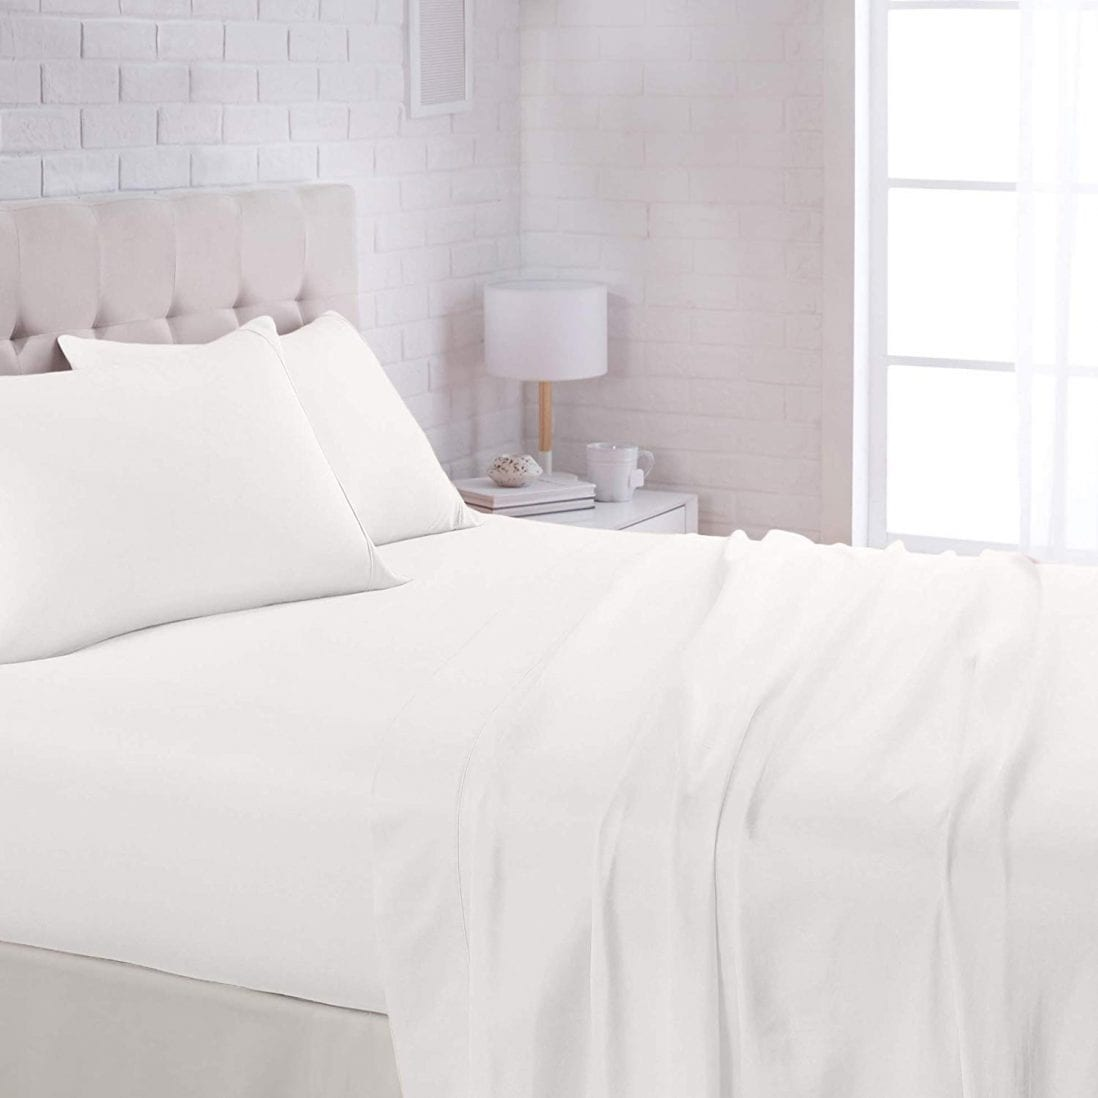 AmazonBasics Best Cooling Sheets for Hot Sleepers Review and Buying Guide by www.dailysleep.org